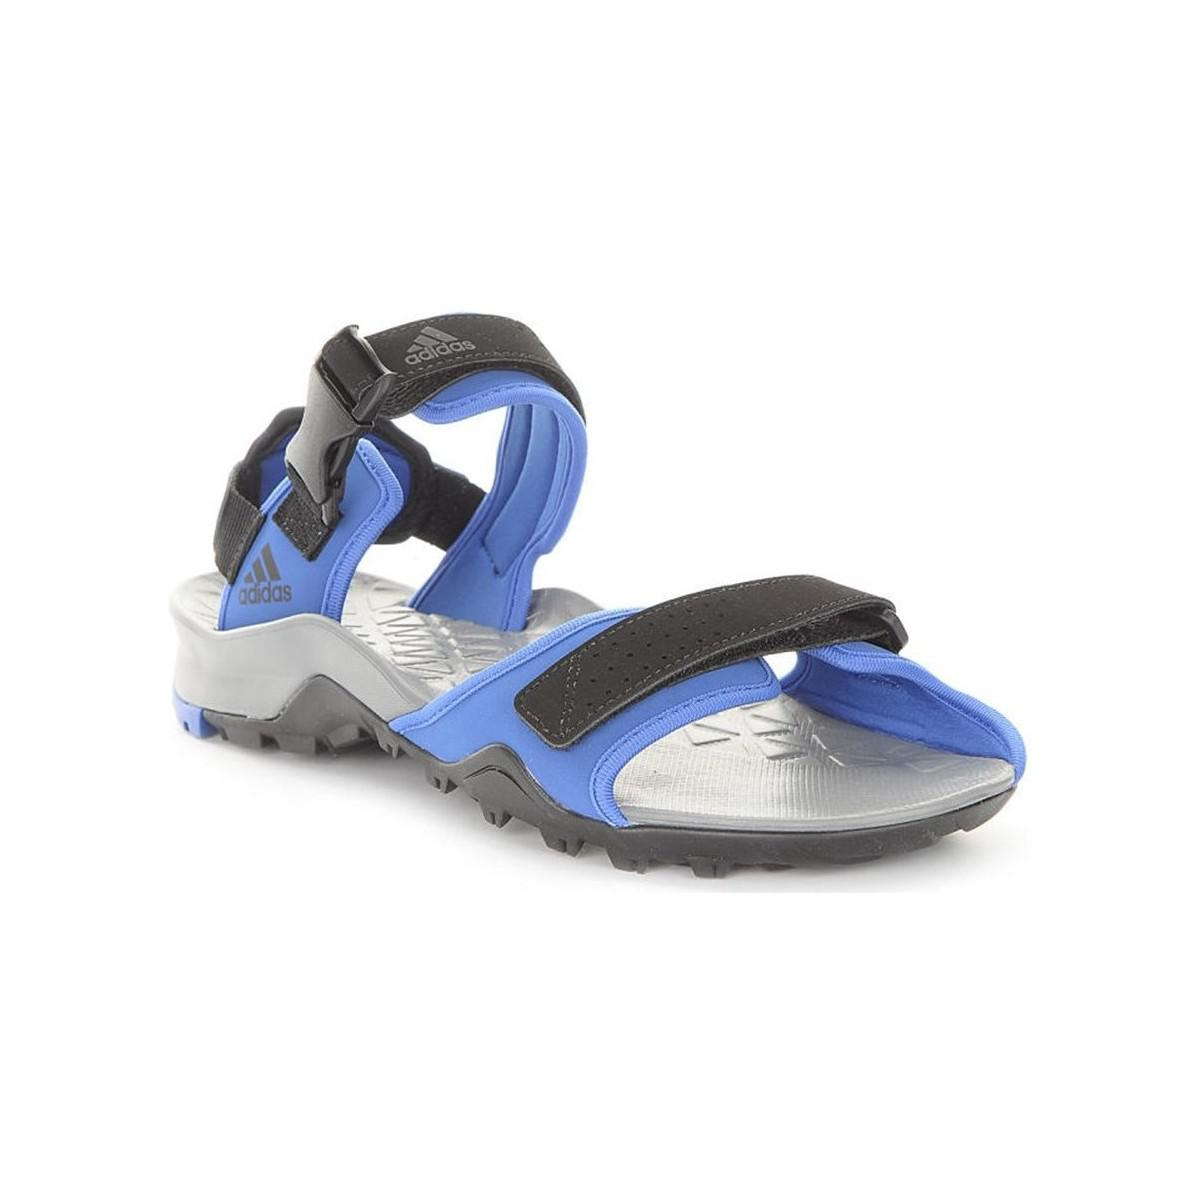 60c1816bde3f adidas Cyprex Ultra Sandal Ii Men s Outdoor Shoes In Blue in Blue ...